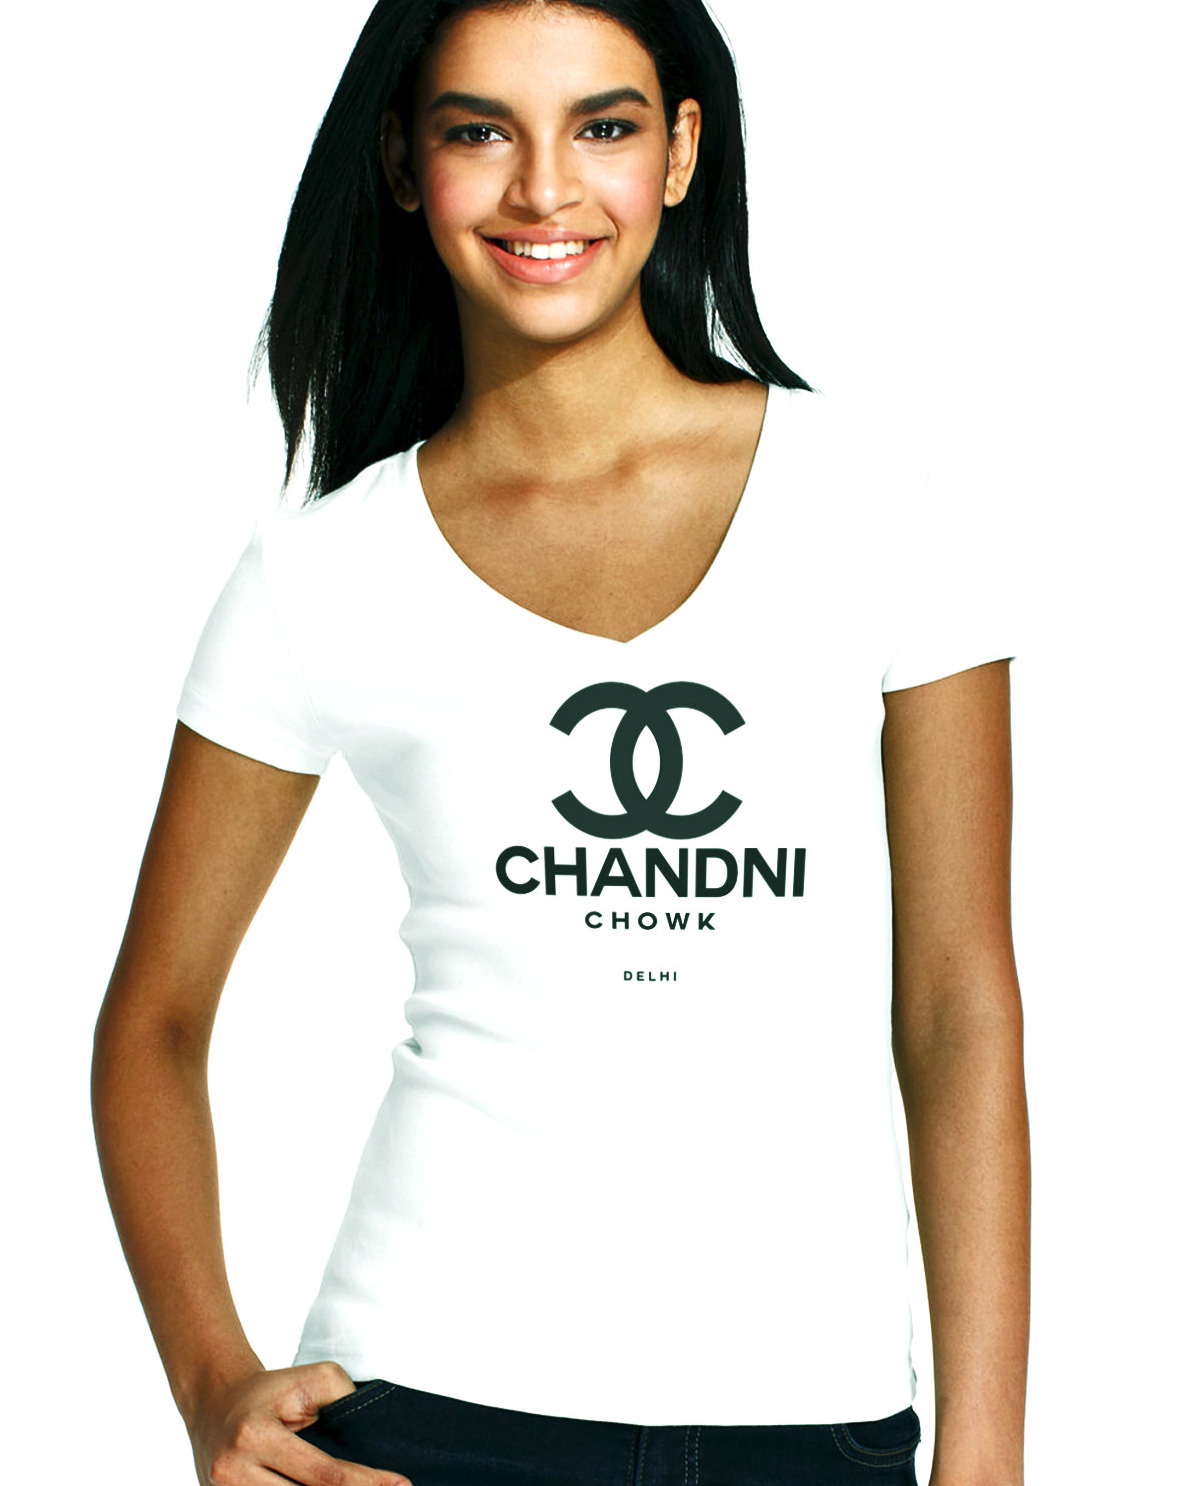 South Asian Female Model white fitted V Neck tshirt with graphic design on front by Brown Man Clothing Co. Chandni Chowk